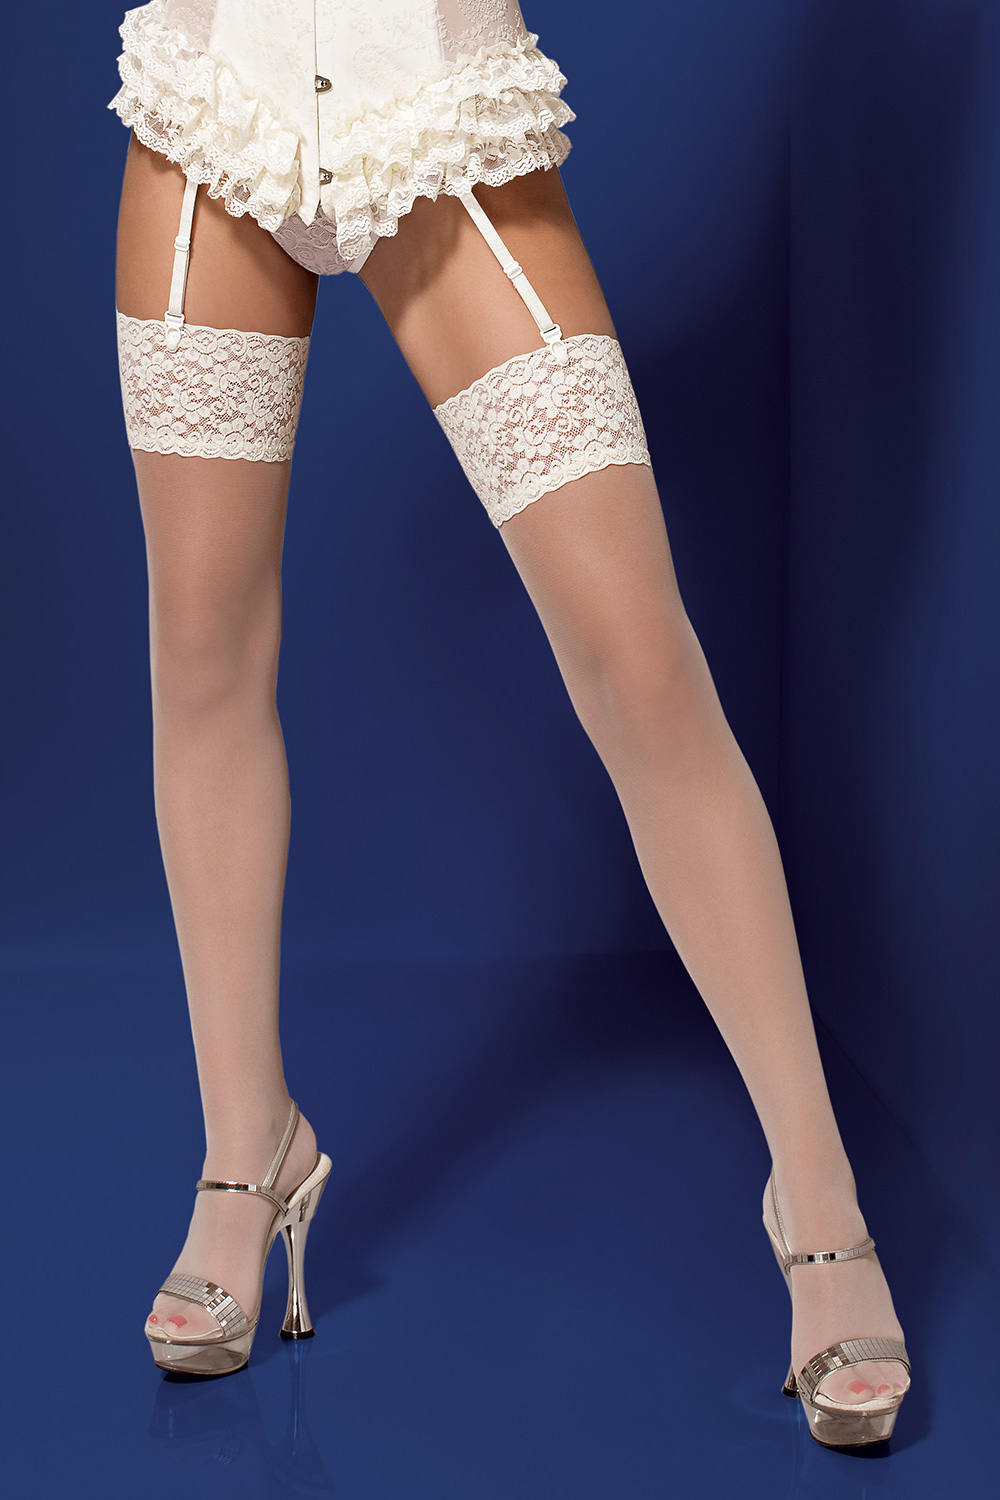 Obsessive S804 stockings